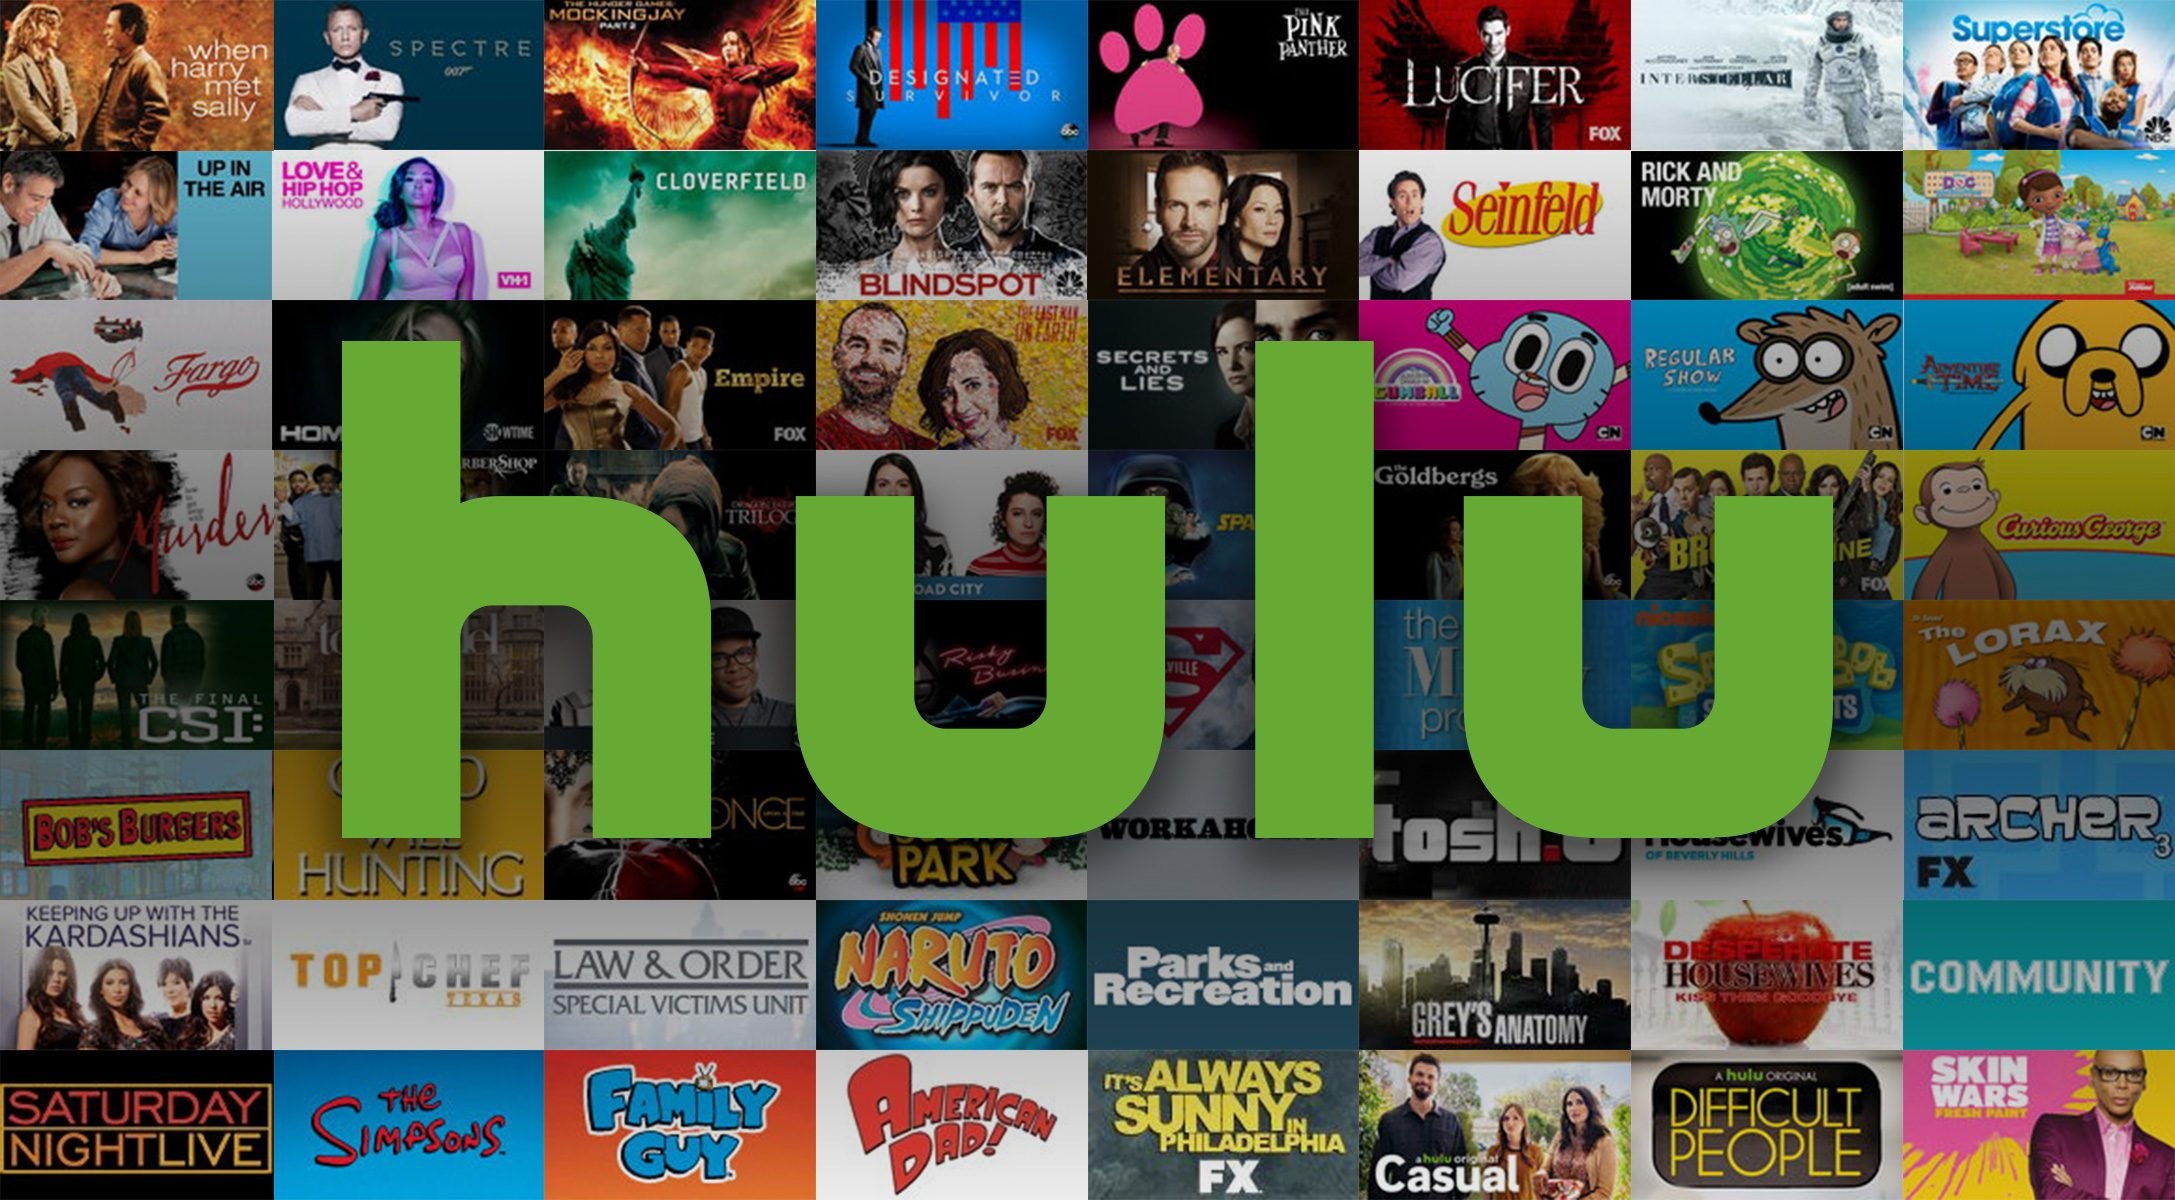 hulu-para-android-tv-agora-permite-streaming-de-1080p